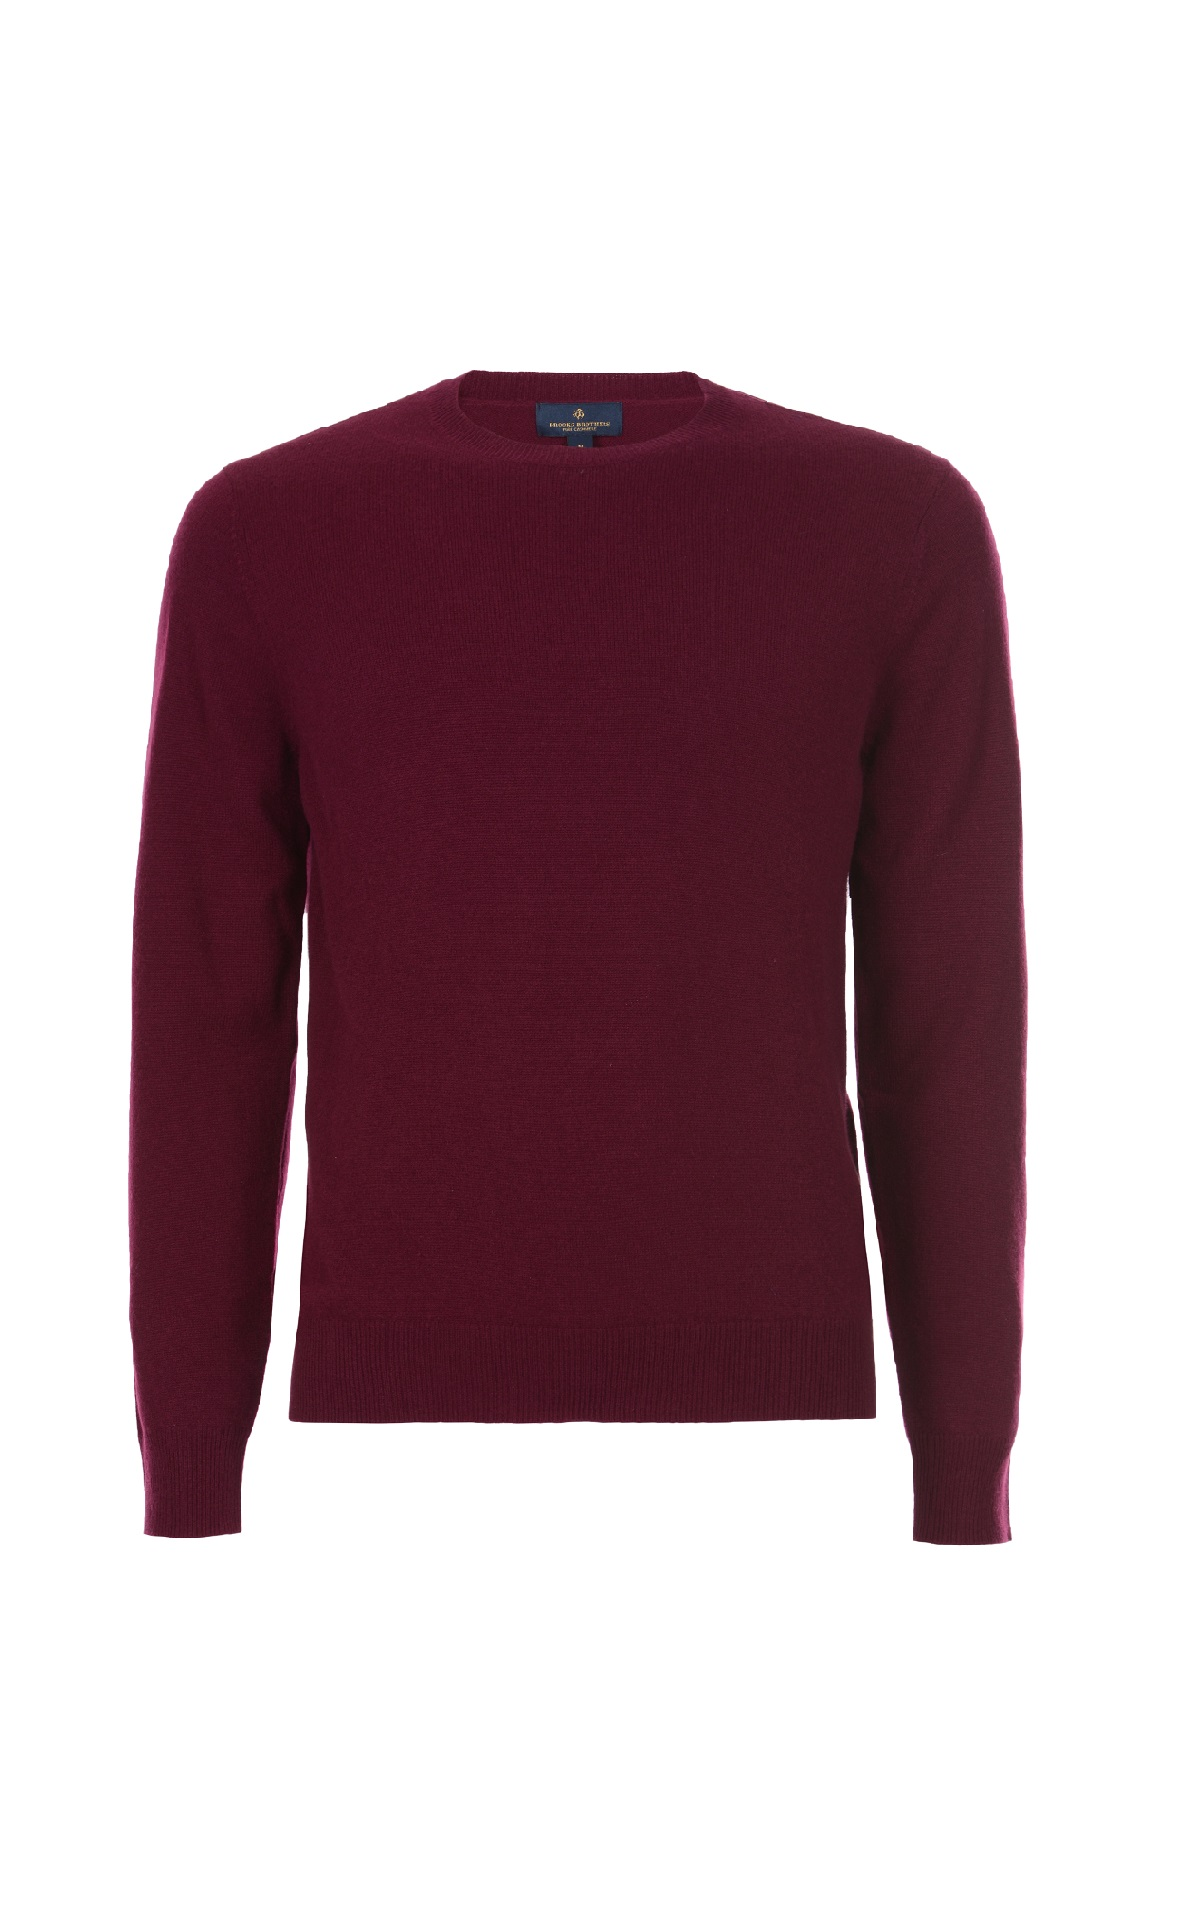 Burgundy cashmere sweater Brooks Brothers